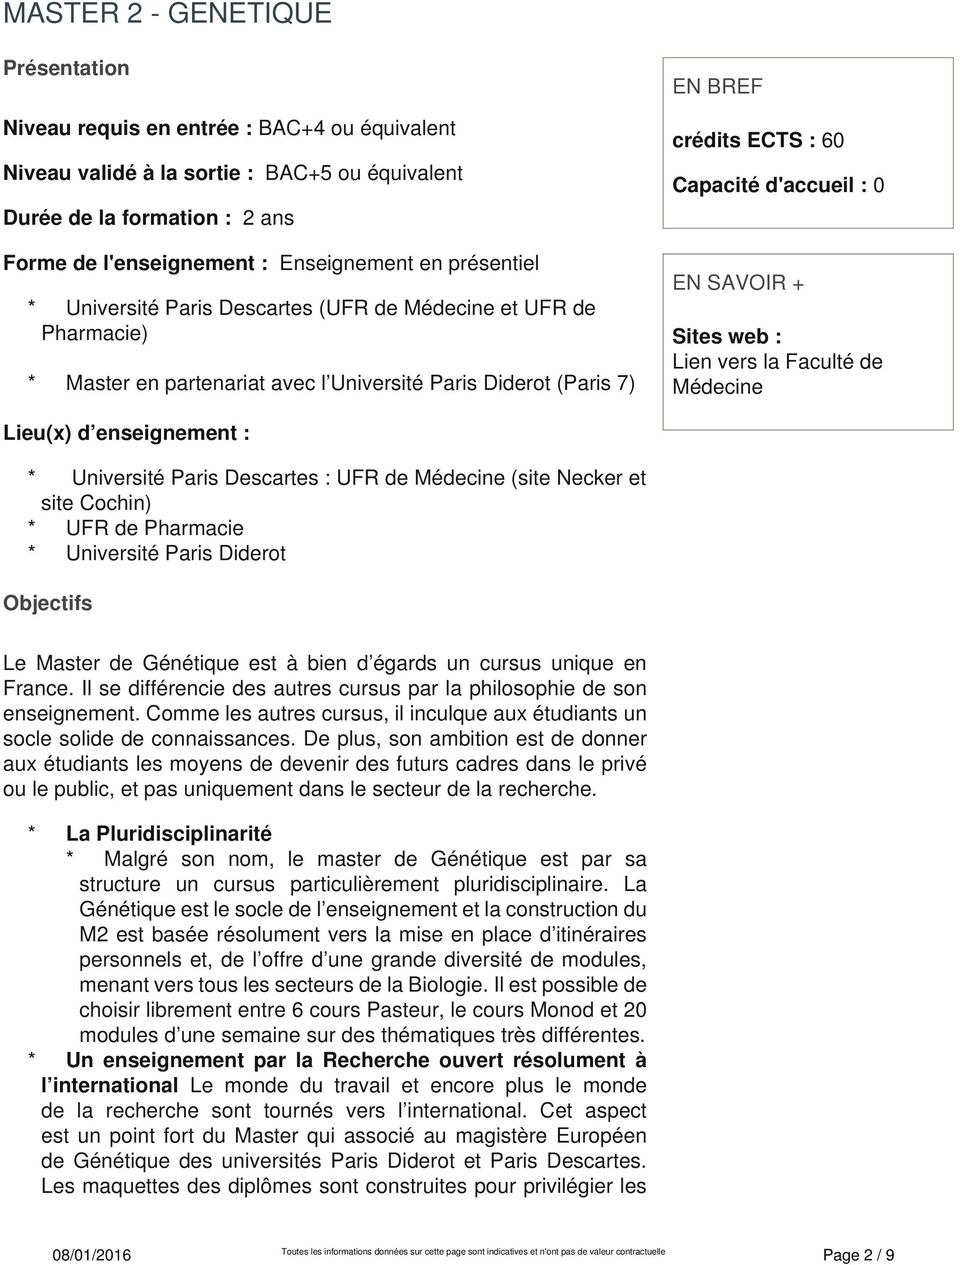 SAVOIR + Sites web : Lien vers la Faculté de Médecine Lieu(x) d enseignement : * Université Paris Descartes : UFR de Médecine (site Necker et site Cochin) * UFR de Pharmacie * Université Paris